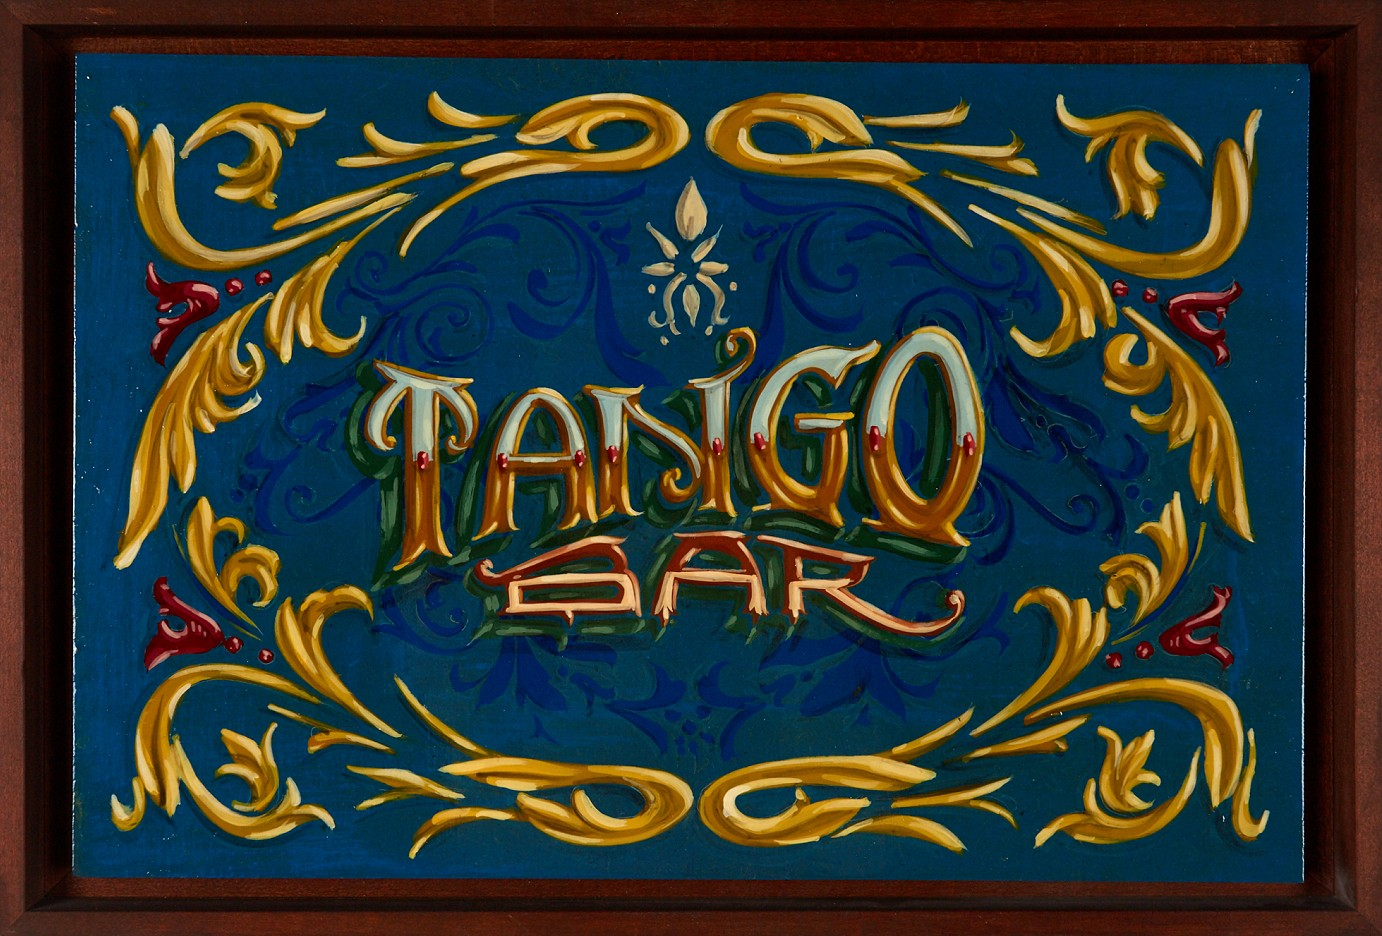 Tango Bar 2, en Filete Porteño